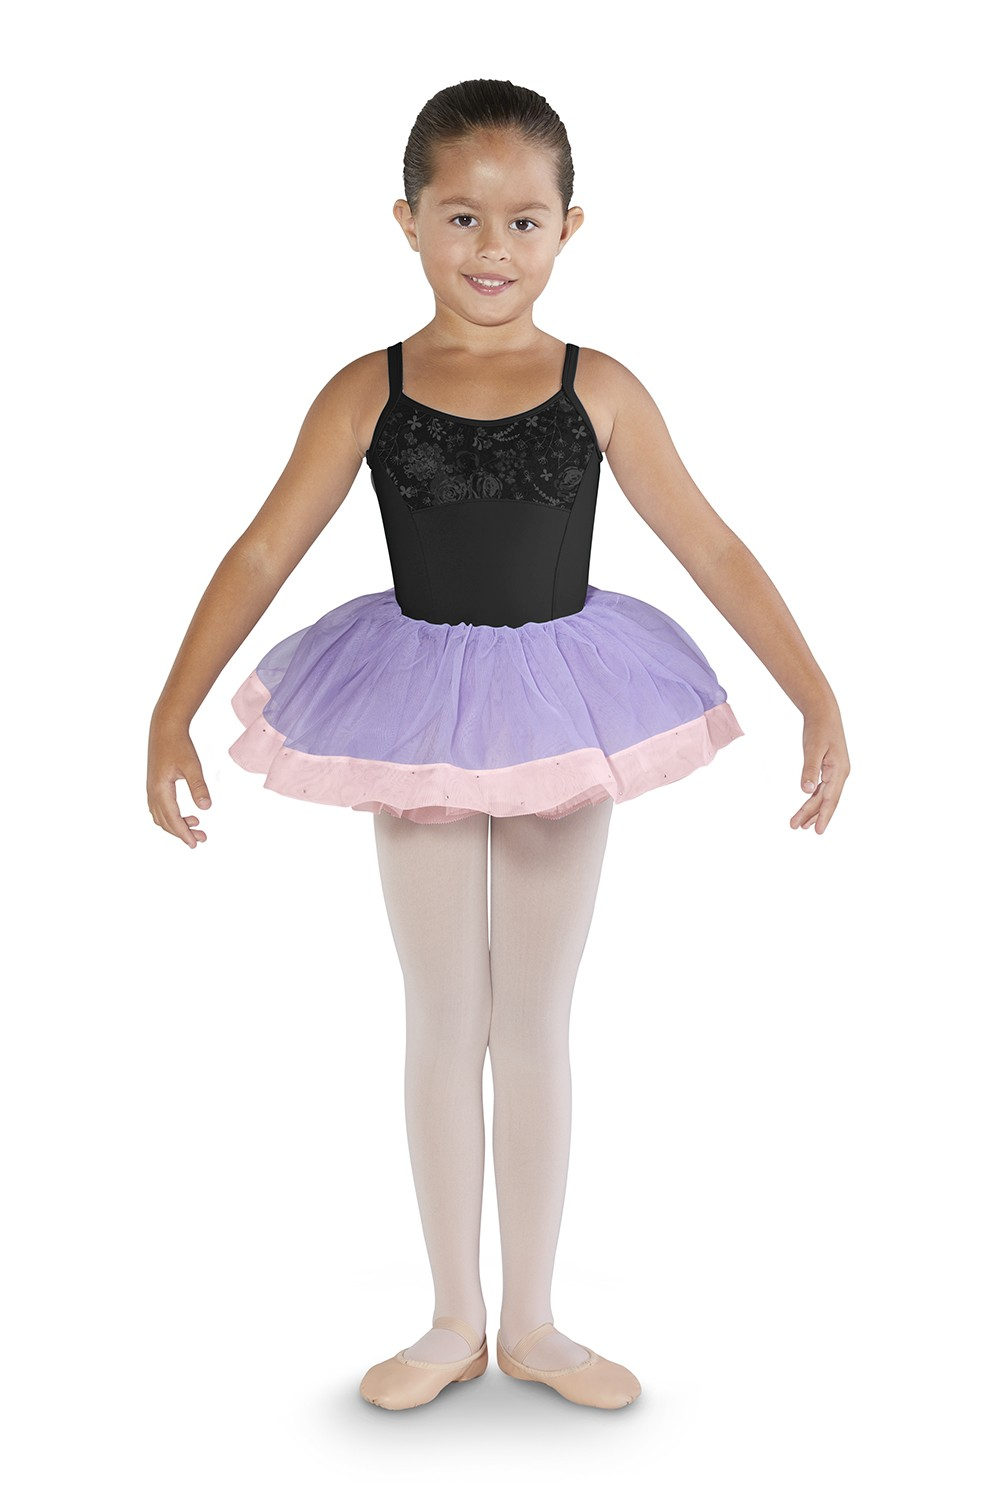 ed03e54f1 BLOCH® Children's Dancewear & Accessories - BLOCH® US Store